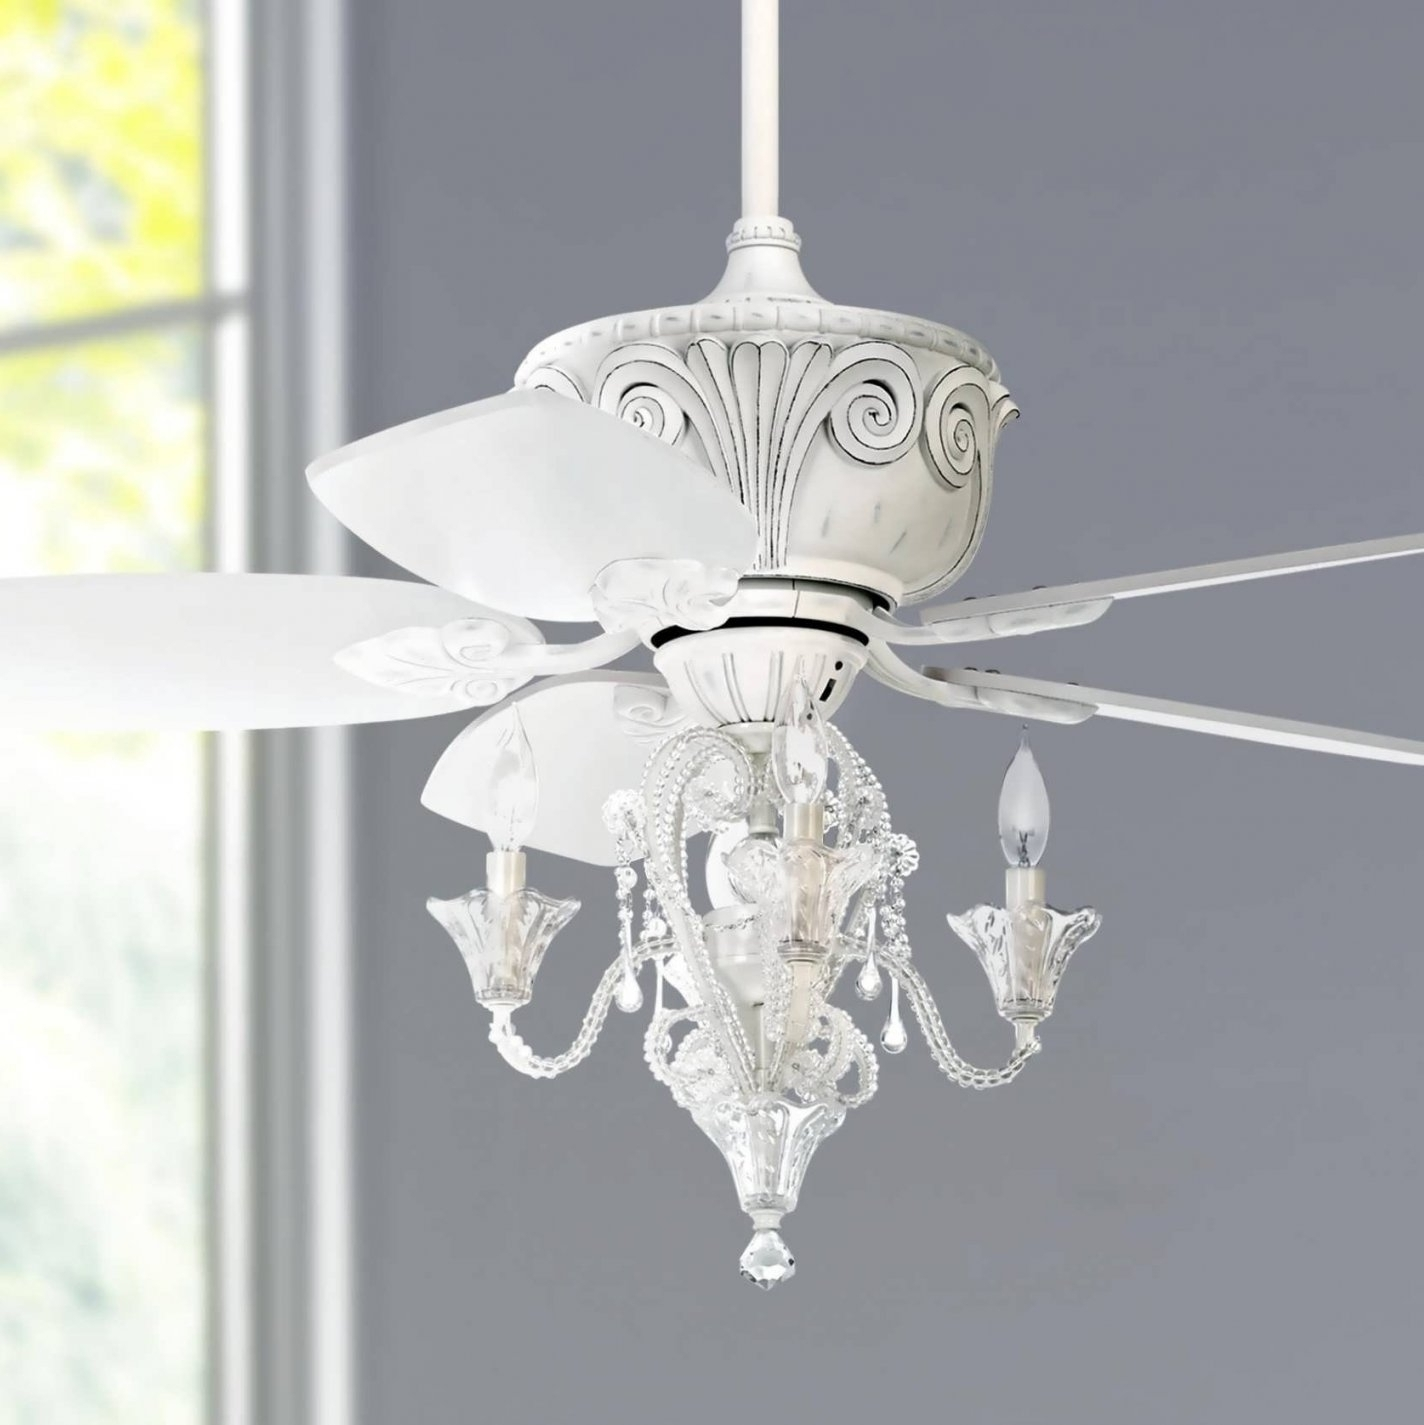 Most Recent Beautiful Chandelier Throughout Chandelier Ceiling Fan Light Kit Beautiful Chandelier Black (View 15 of 20)